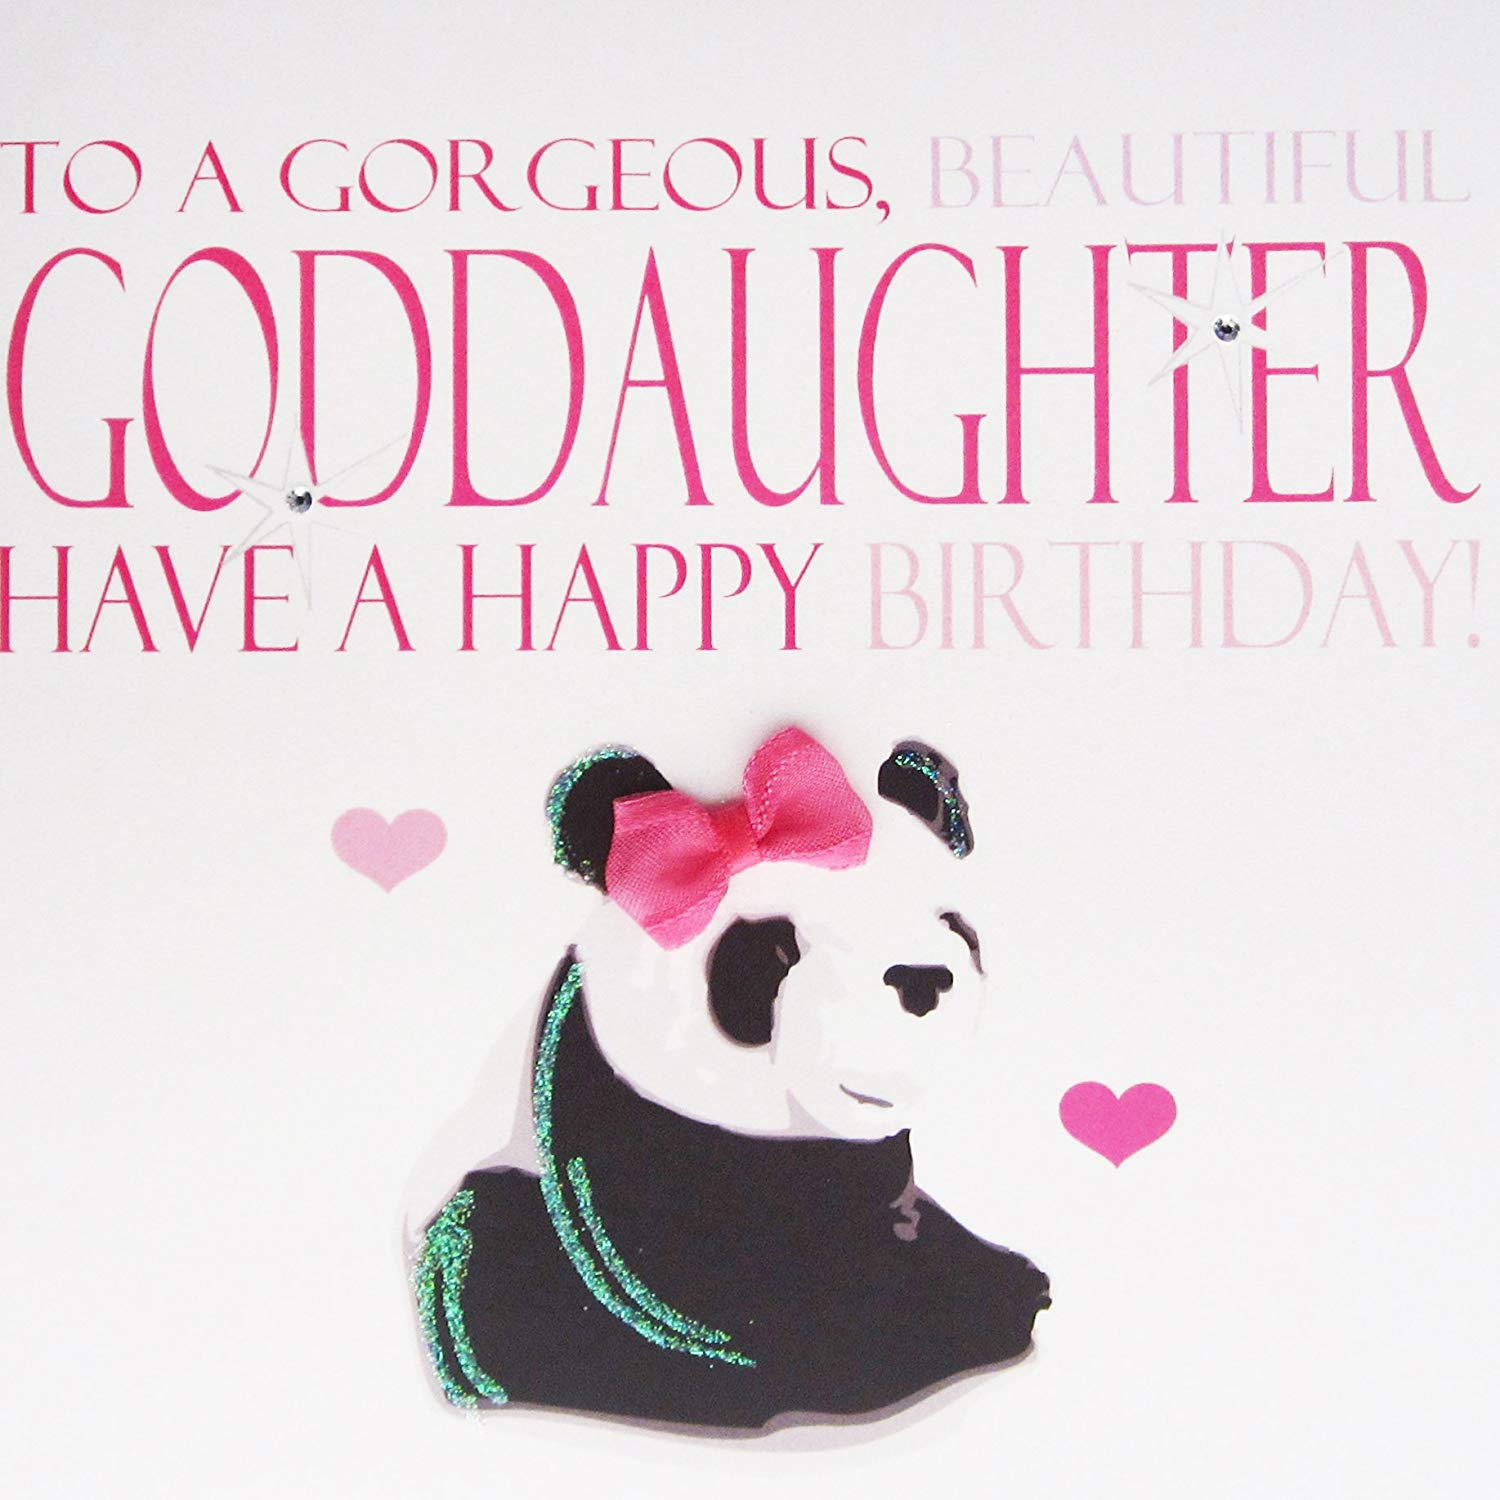 Gorgeous Goddaughter Birthday wishes from mom